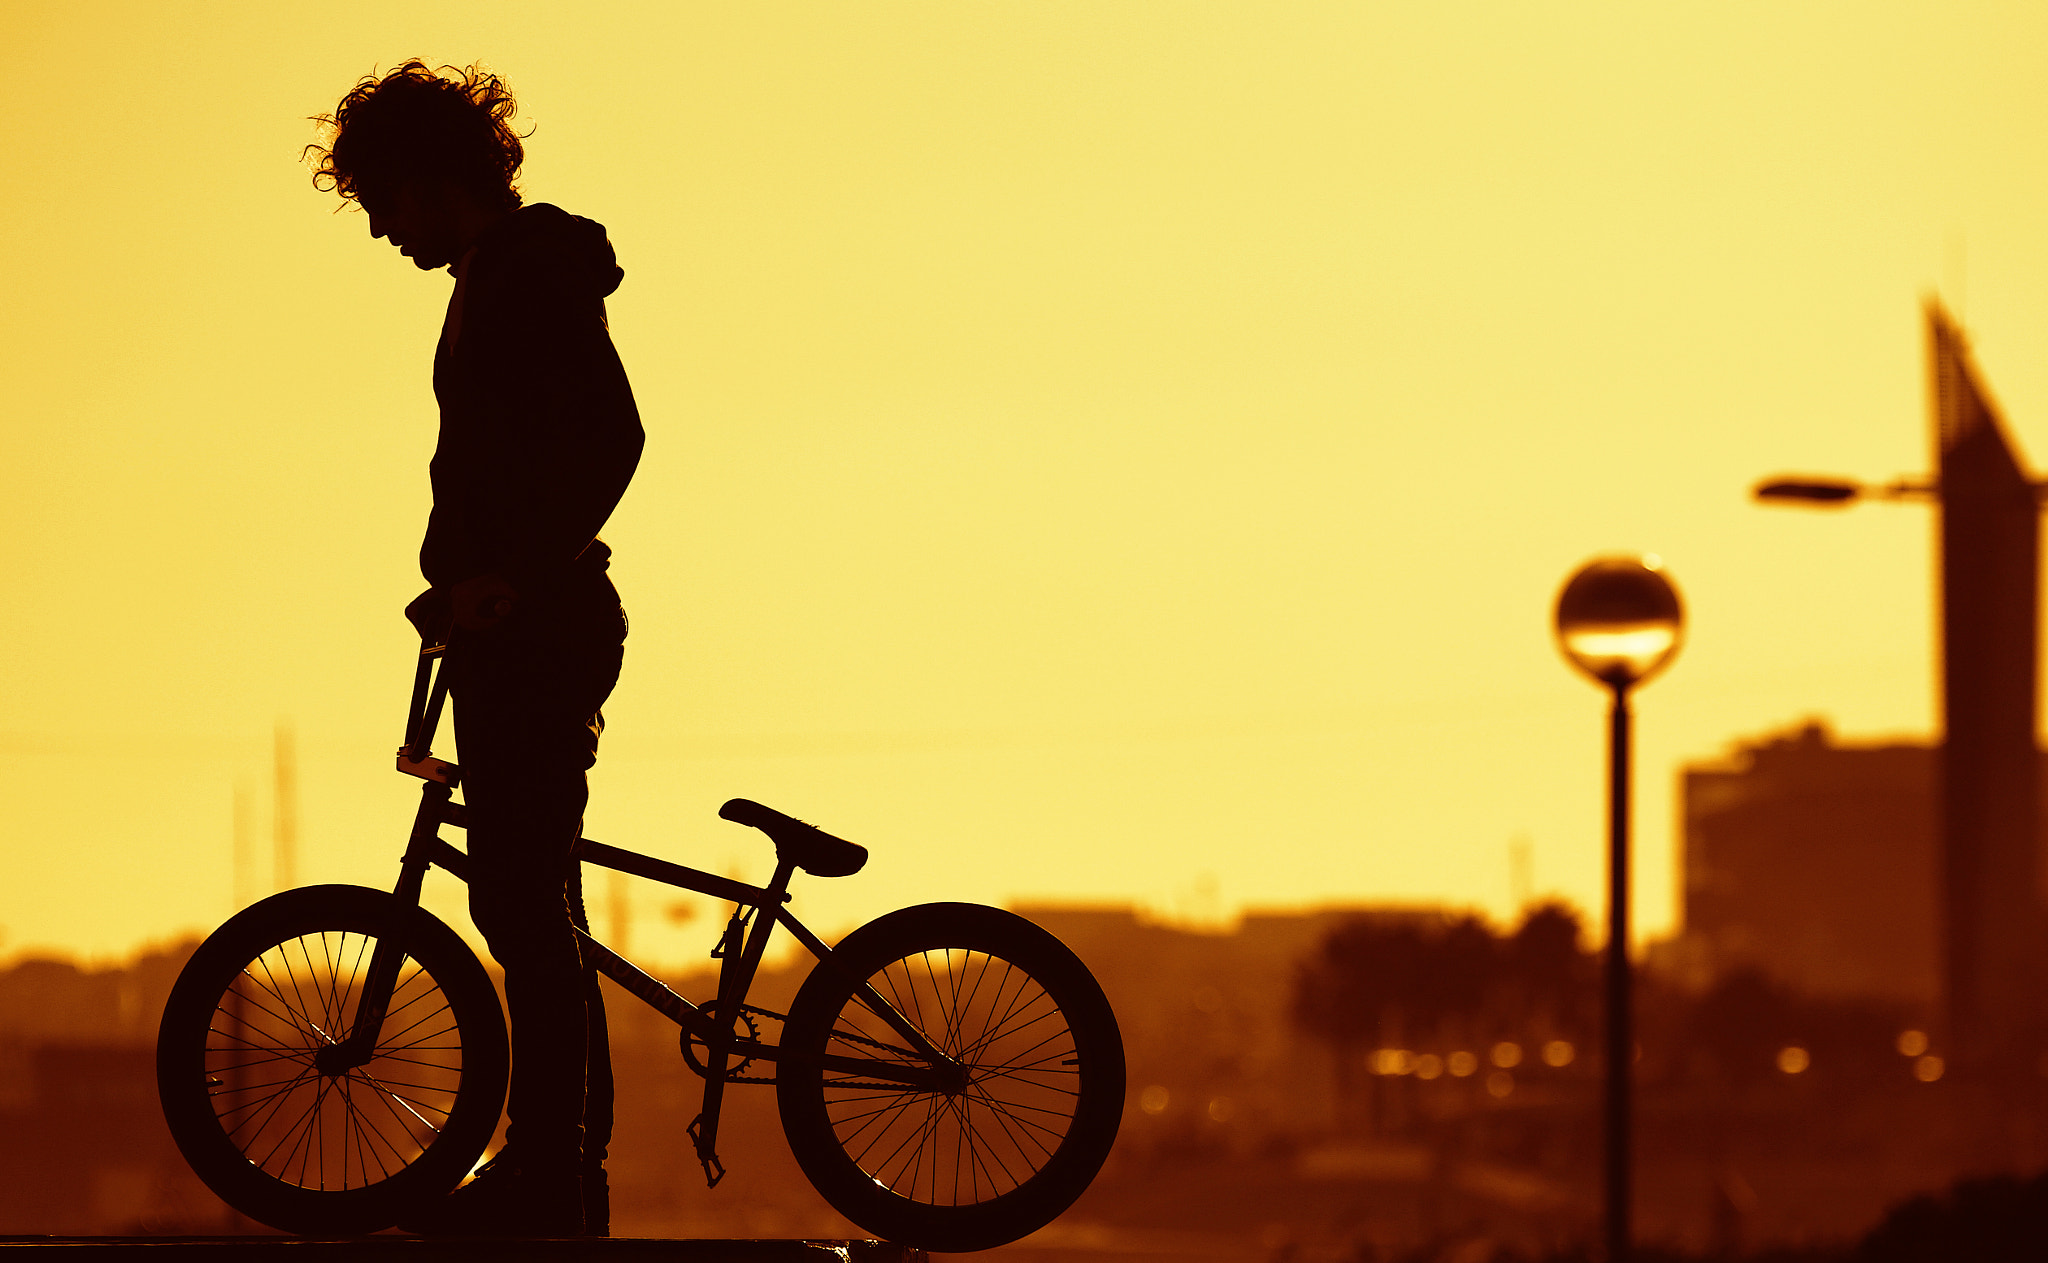 Photograph bmx sunset by Marc Serarols on 500px